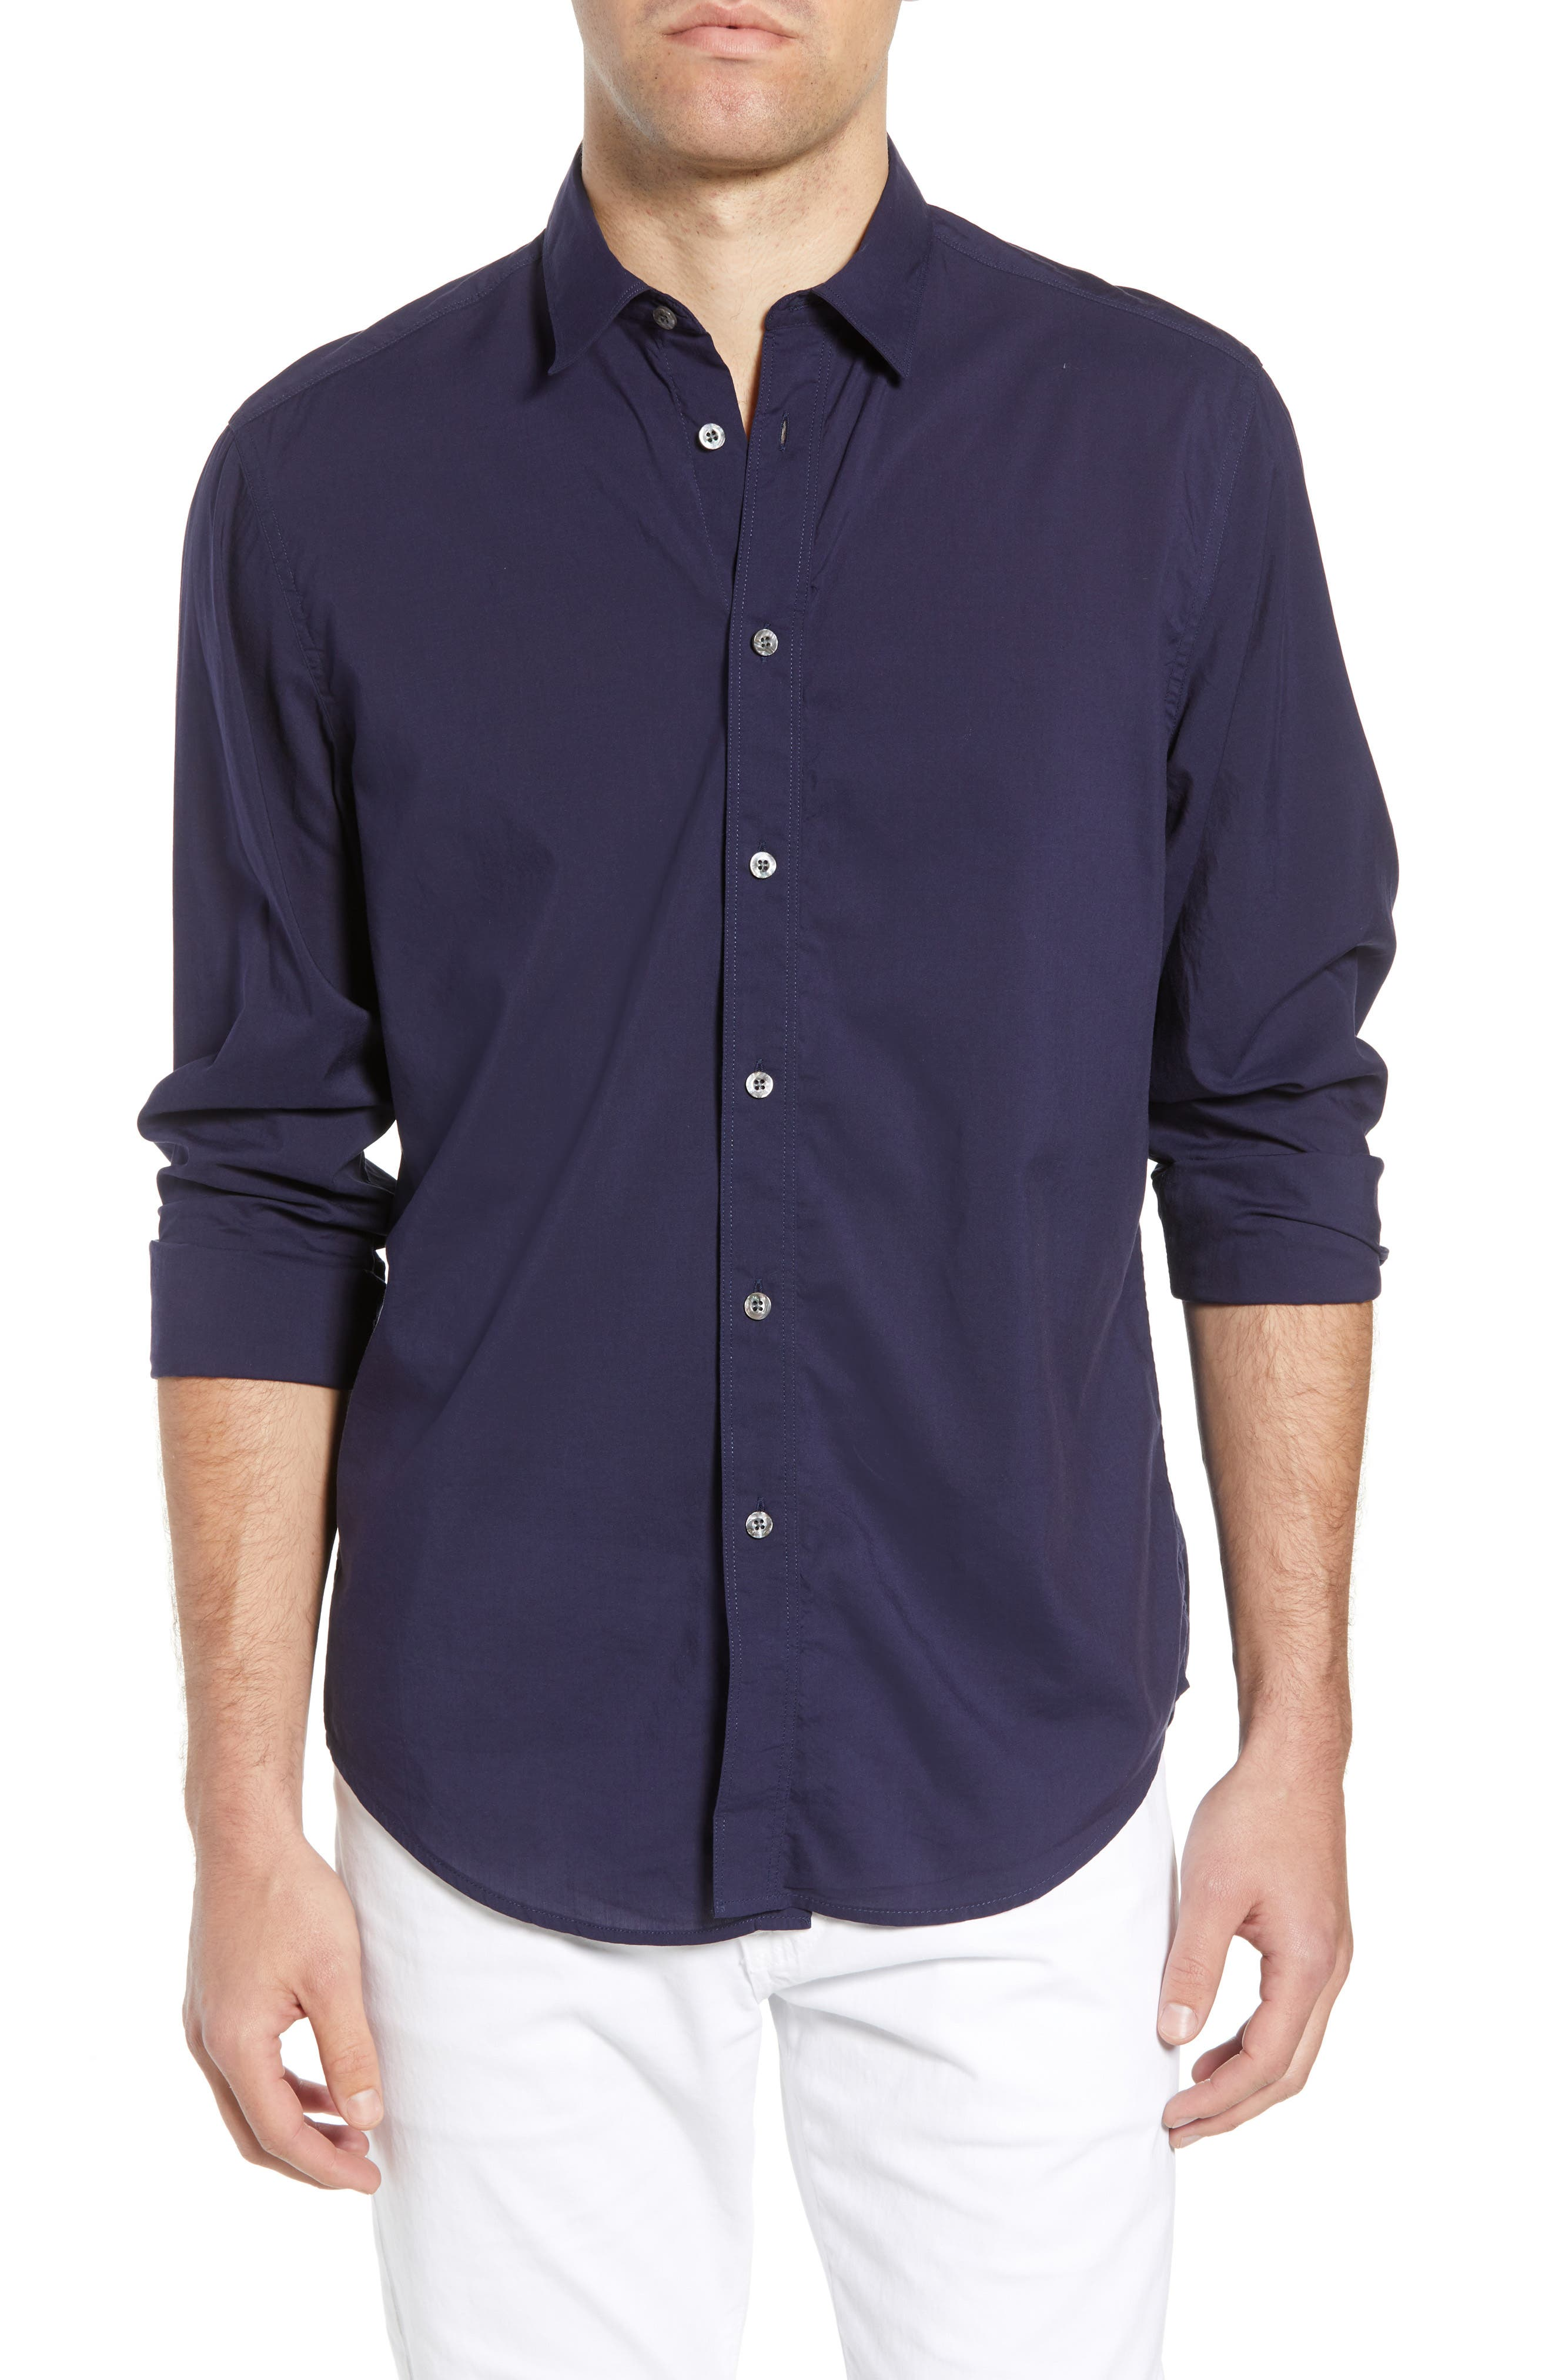 Pacifica Regular Fit Solid Sport Shirt,                             Main thumbnail 1, color,                             Navy